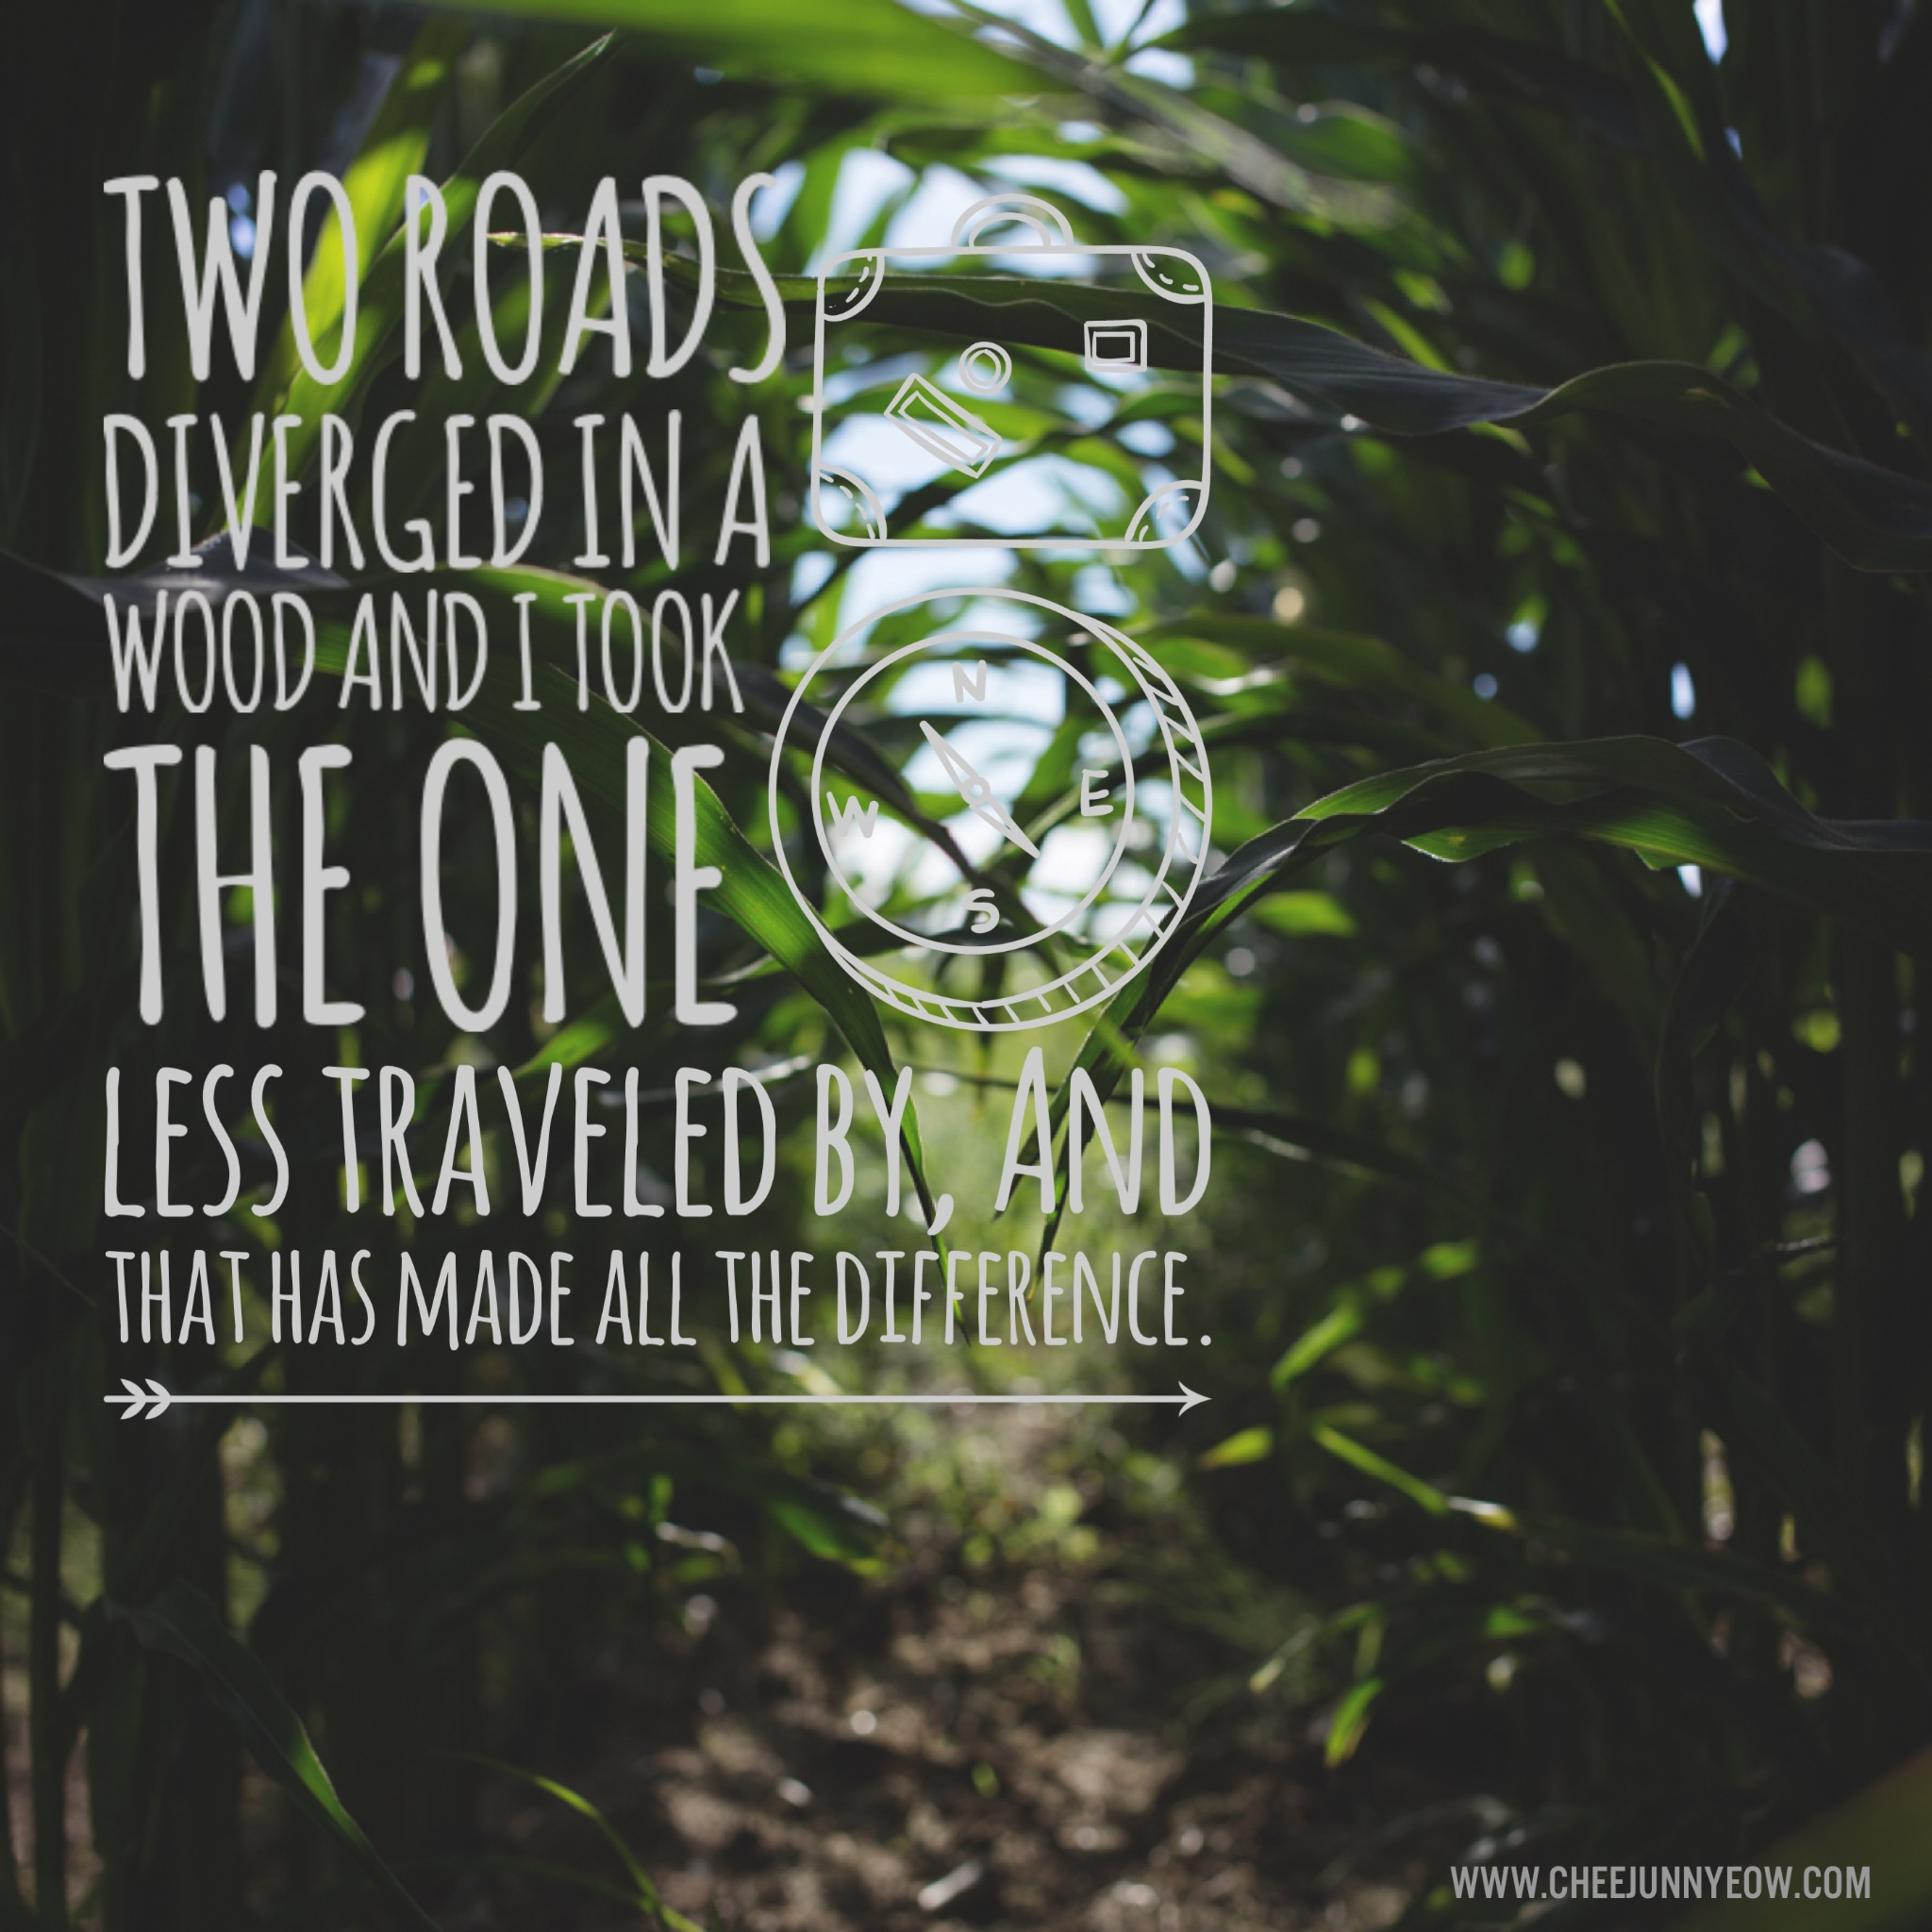 two roads diverged in a wood and I took the one less traveled by and that has made all the difference